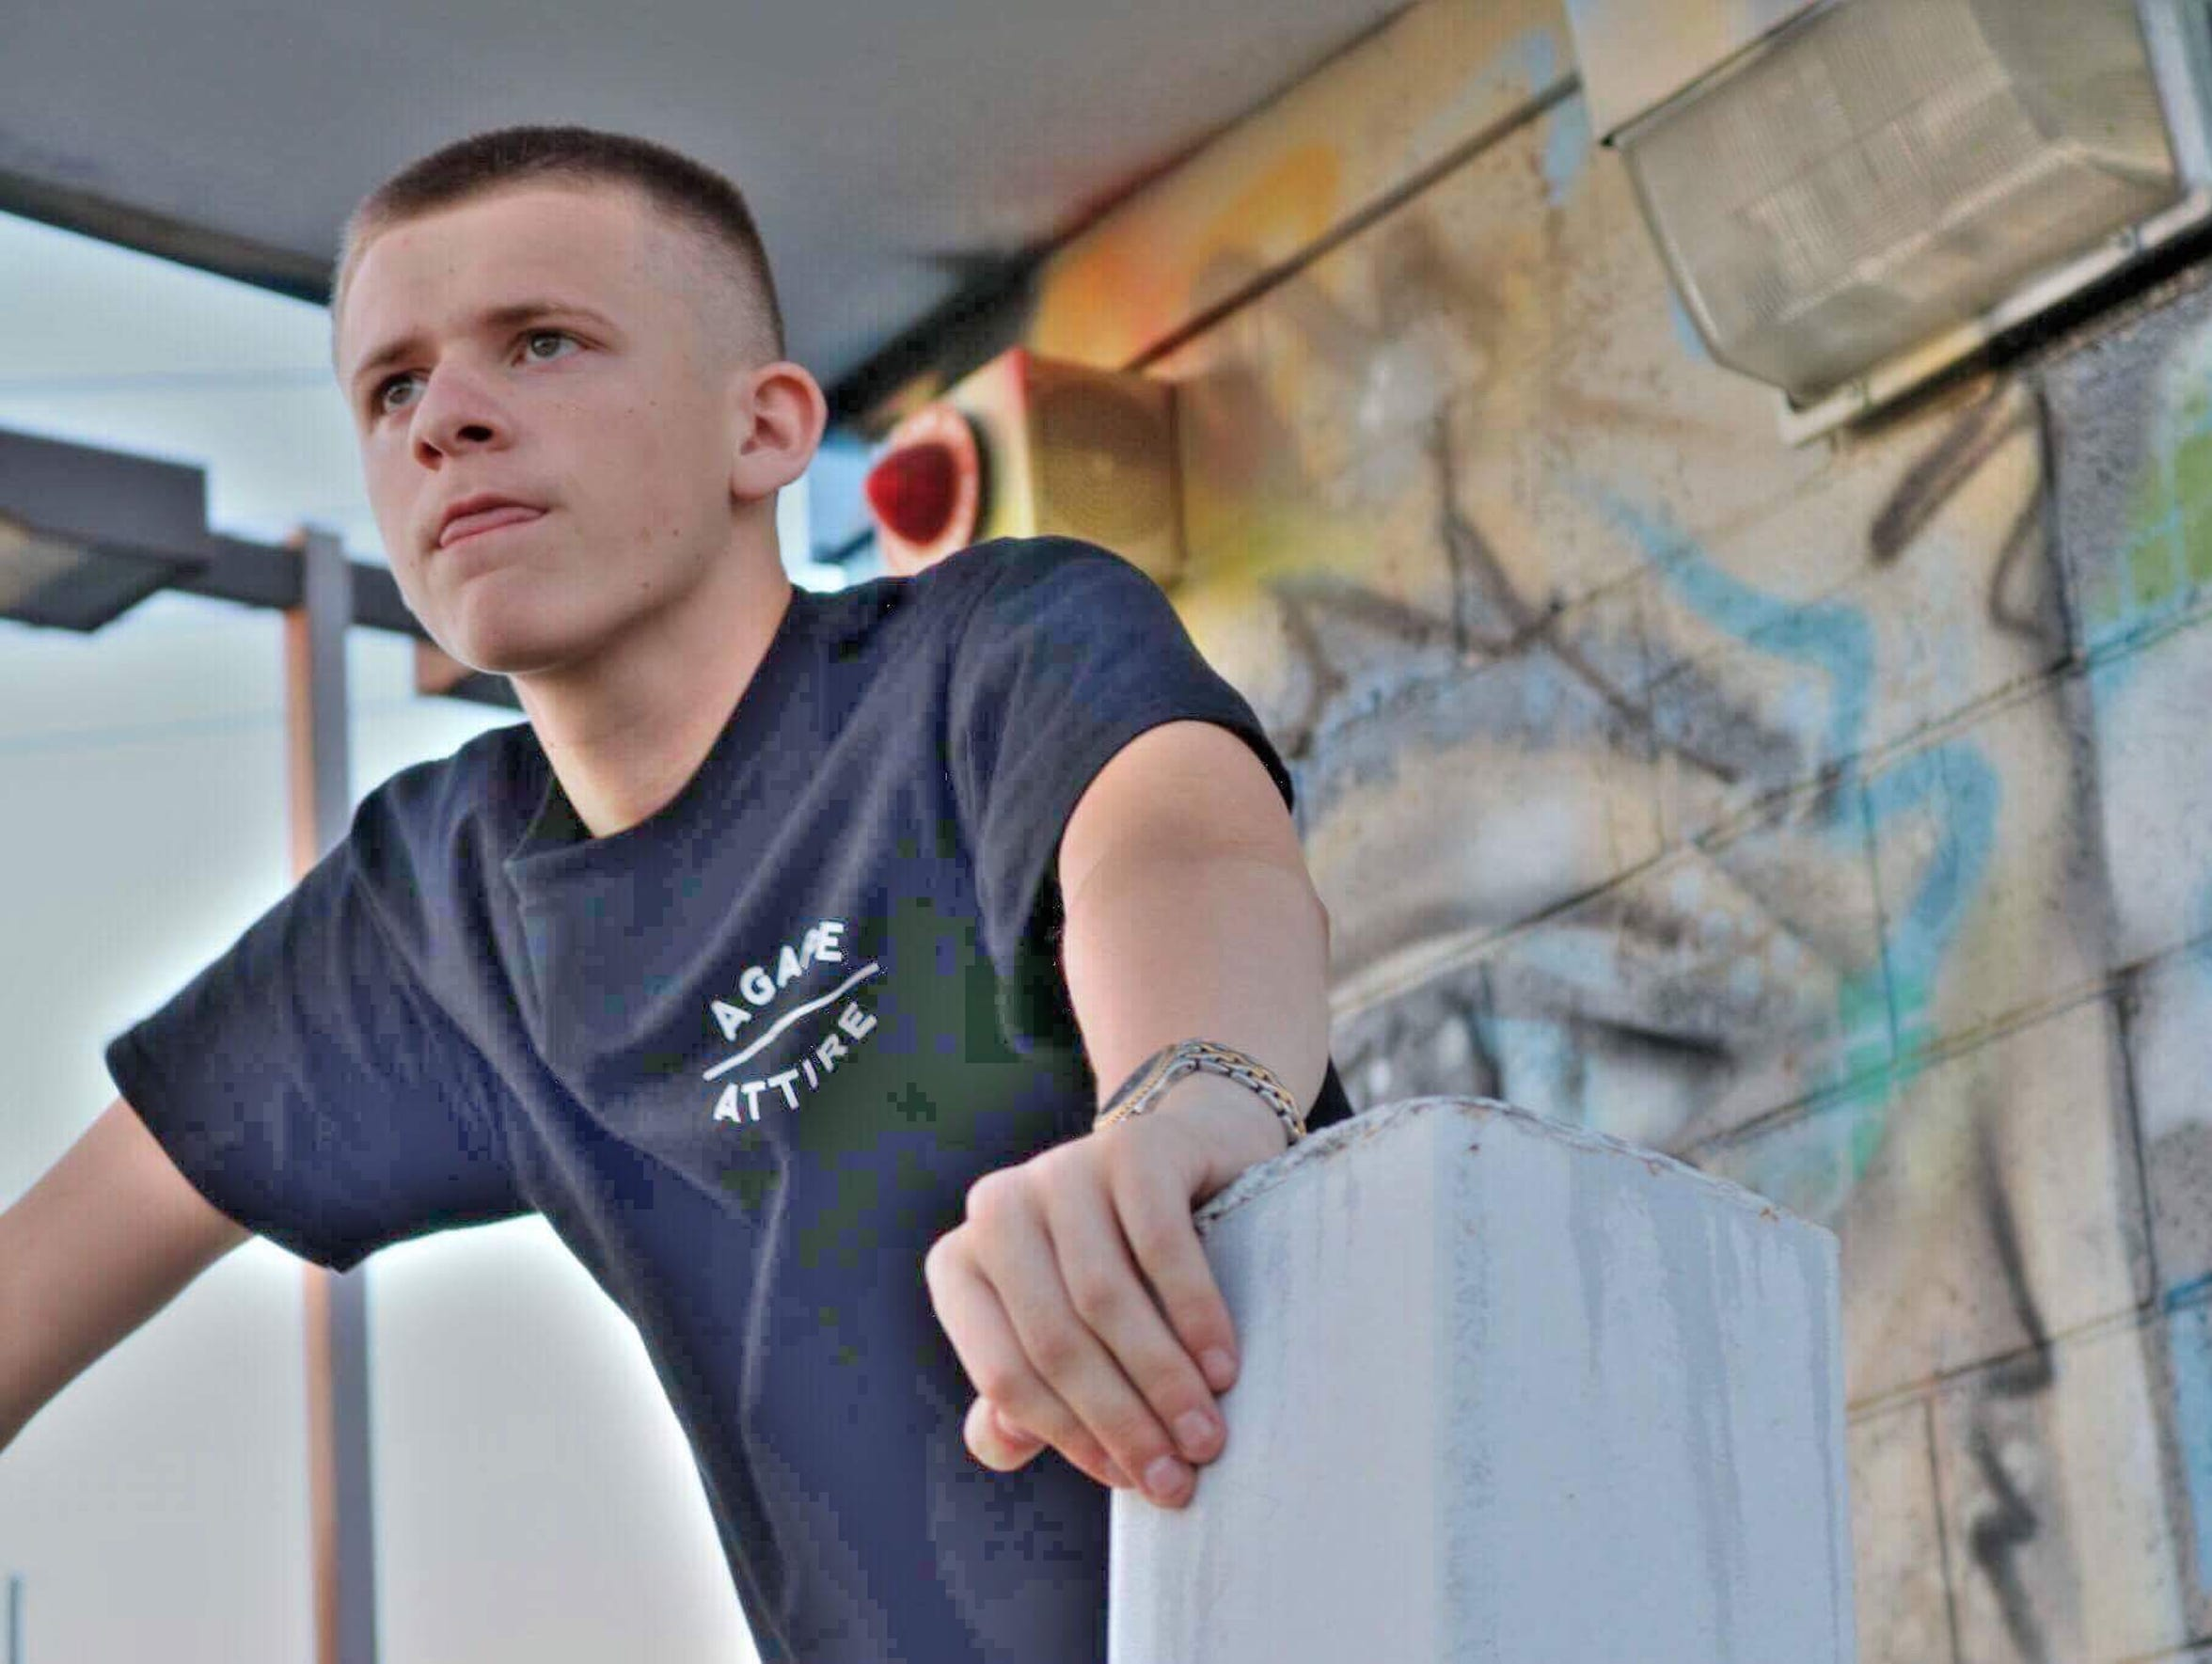 Matthew Chavez, known as Vez, is a rap artist and resident